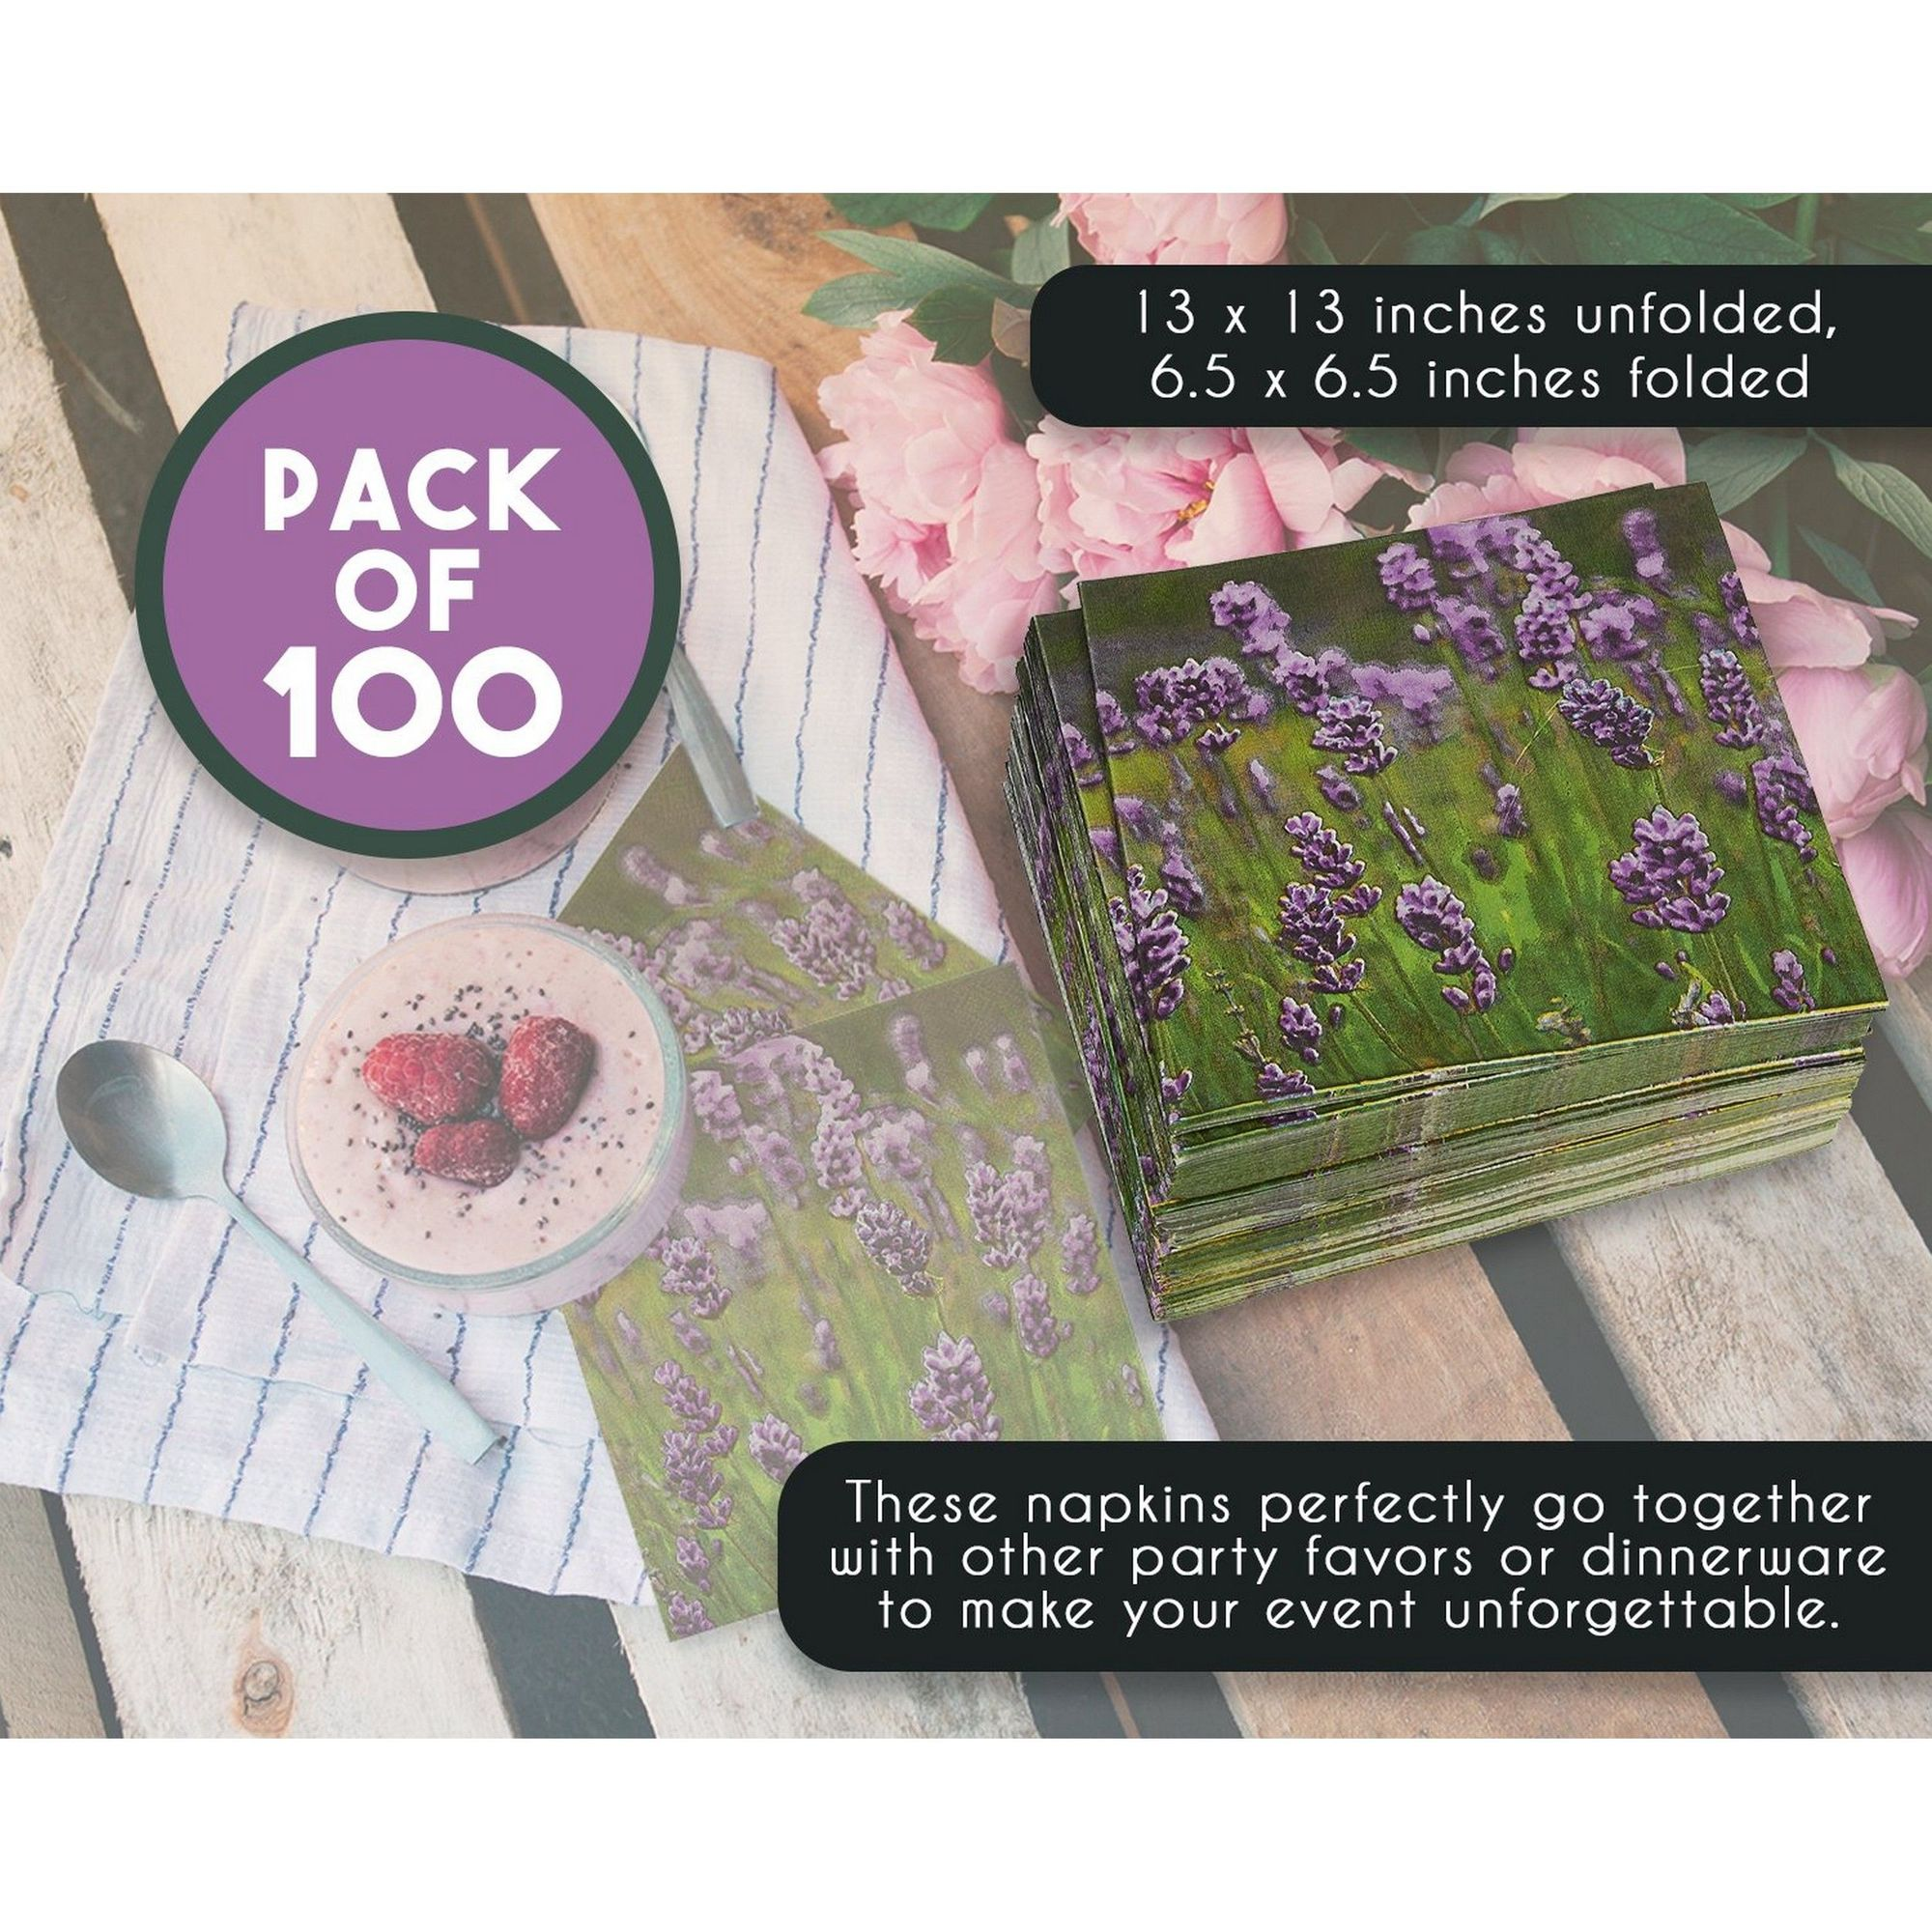 100 Pack Floral Paper Napkins Disposable Lunch Napkins With Purple Lavender Flower Decorative Design For Birthday Wedding Tea Party Supplies And Decorations 6 5 Inches Folded Walmart Com Walmart Com